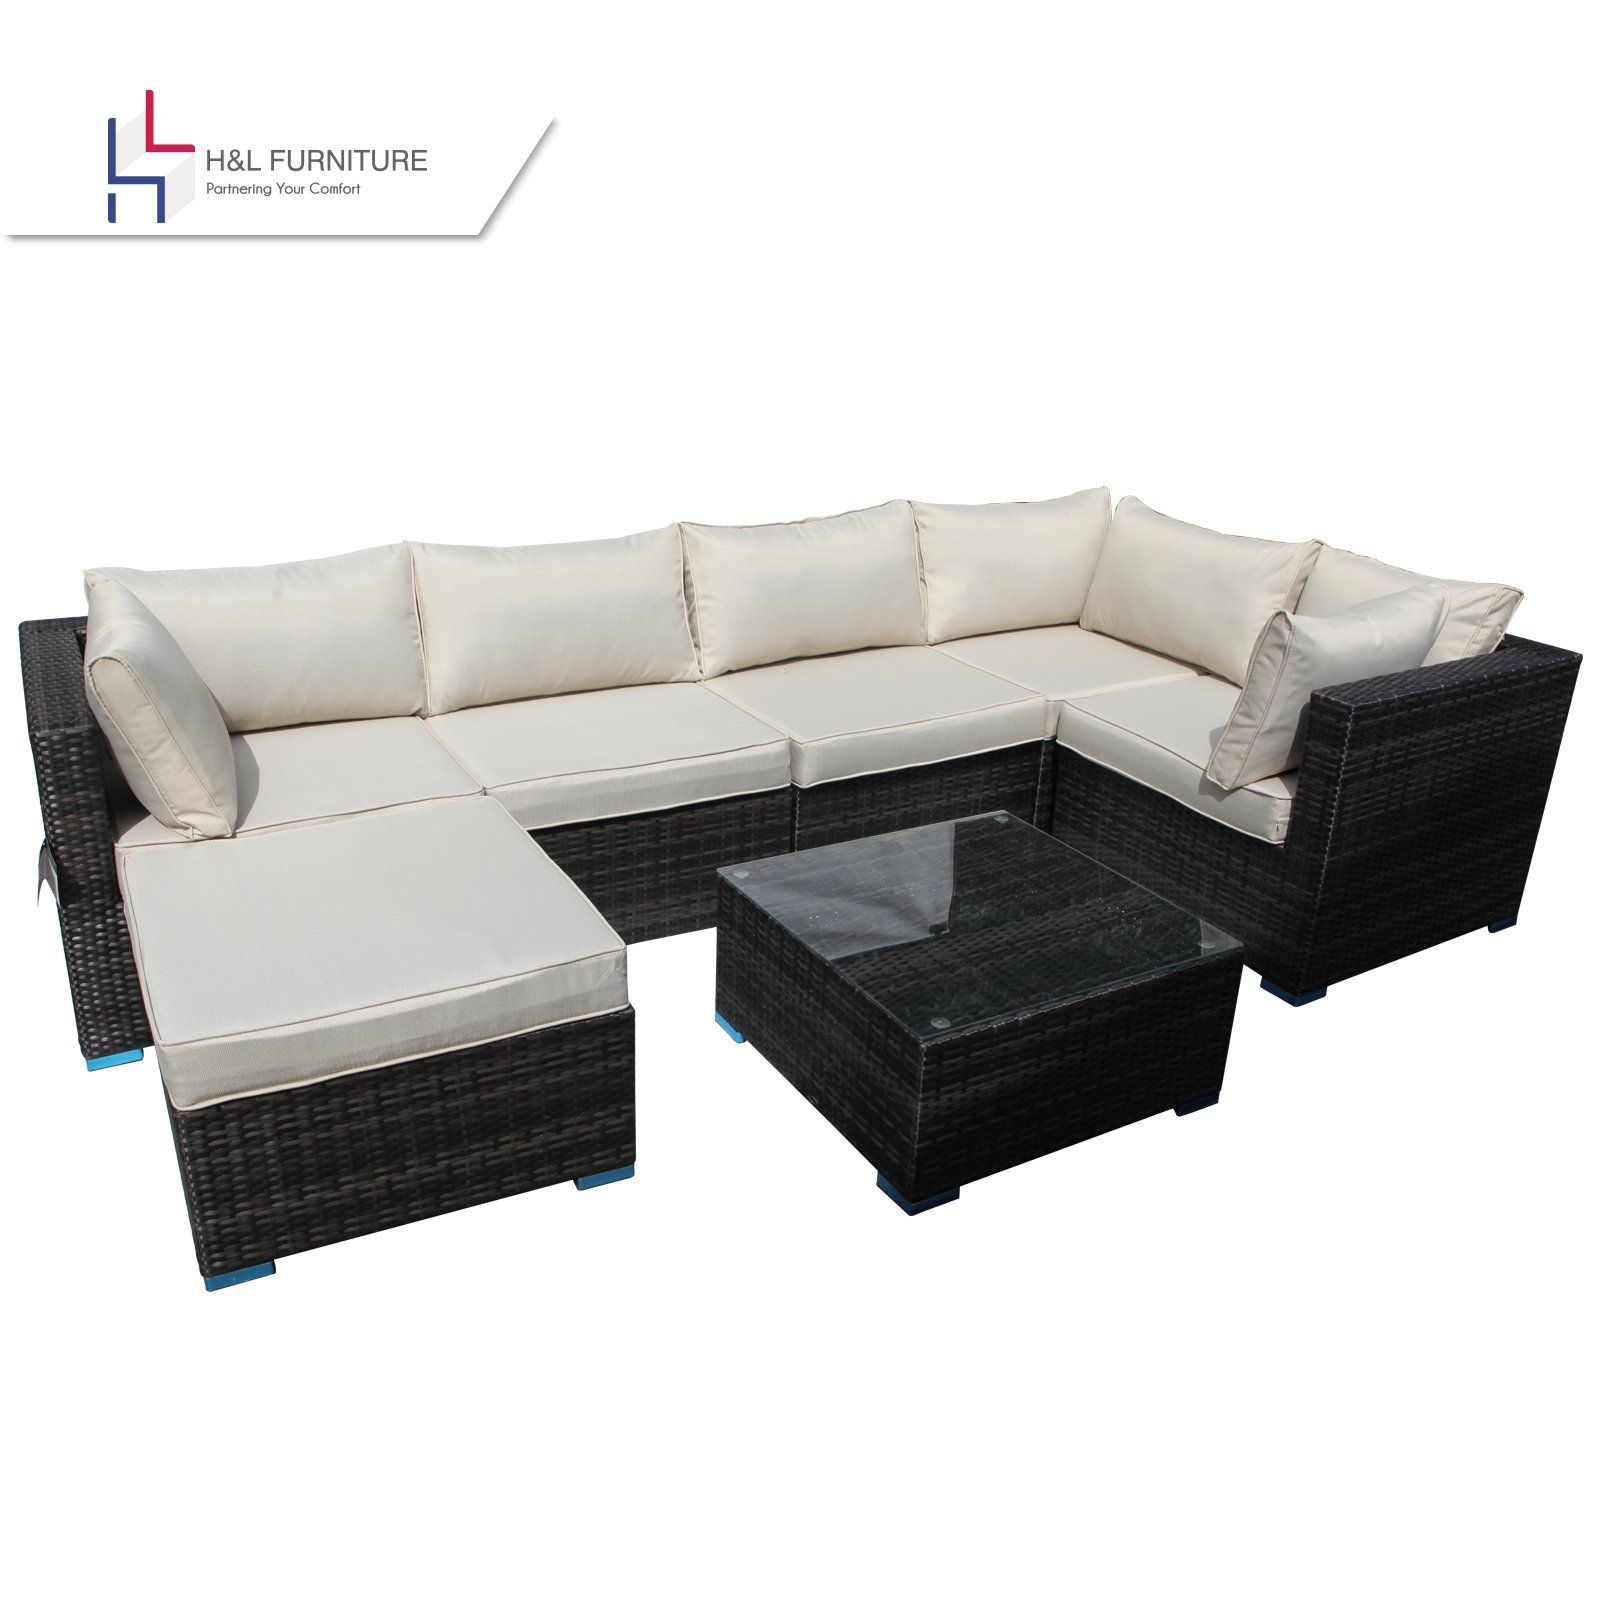 Outdoor furniture sets · holiday sale h